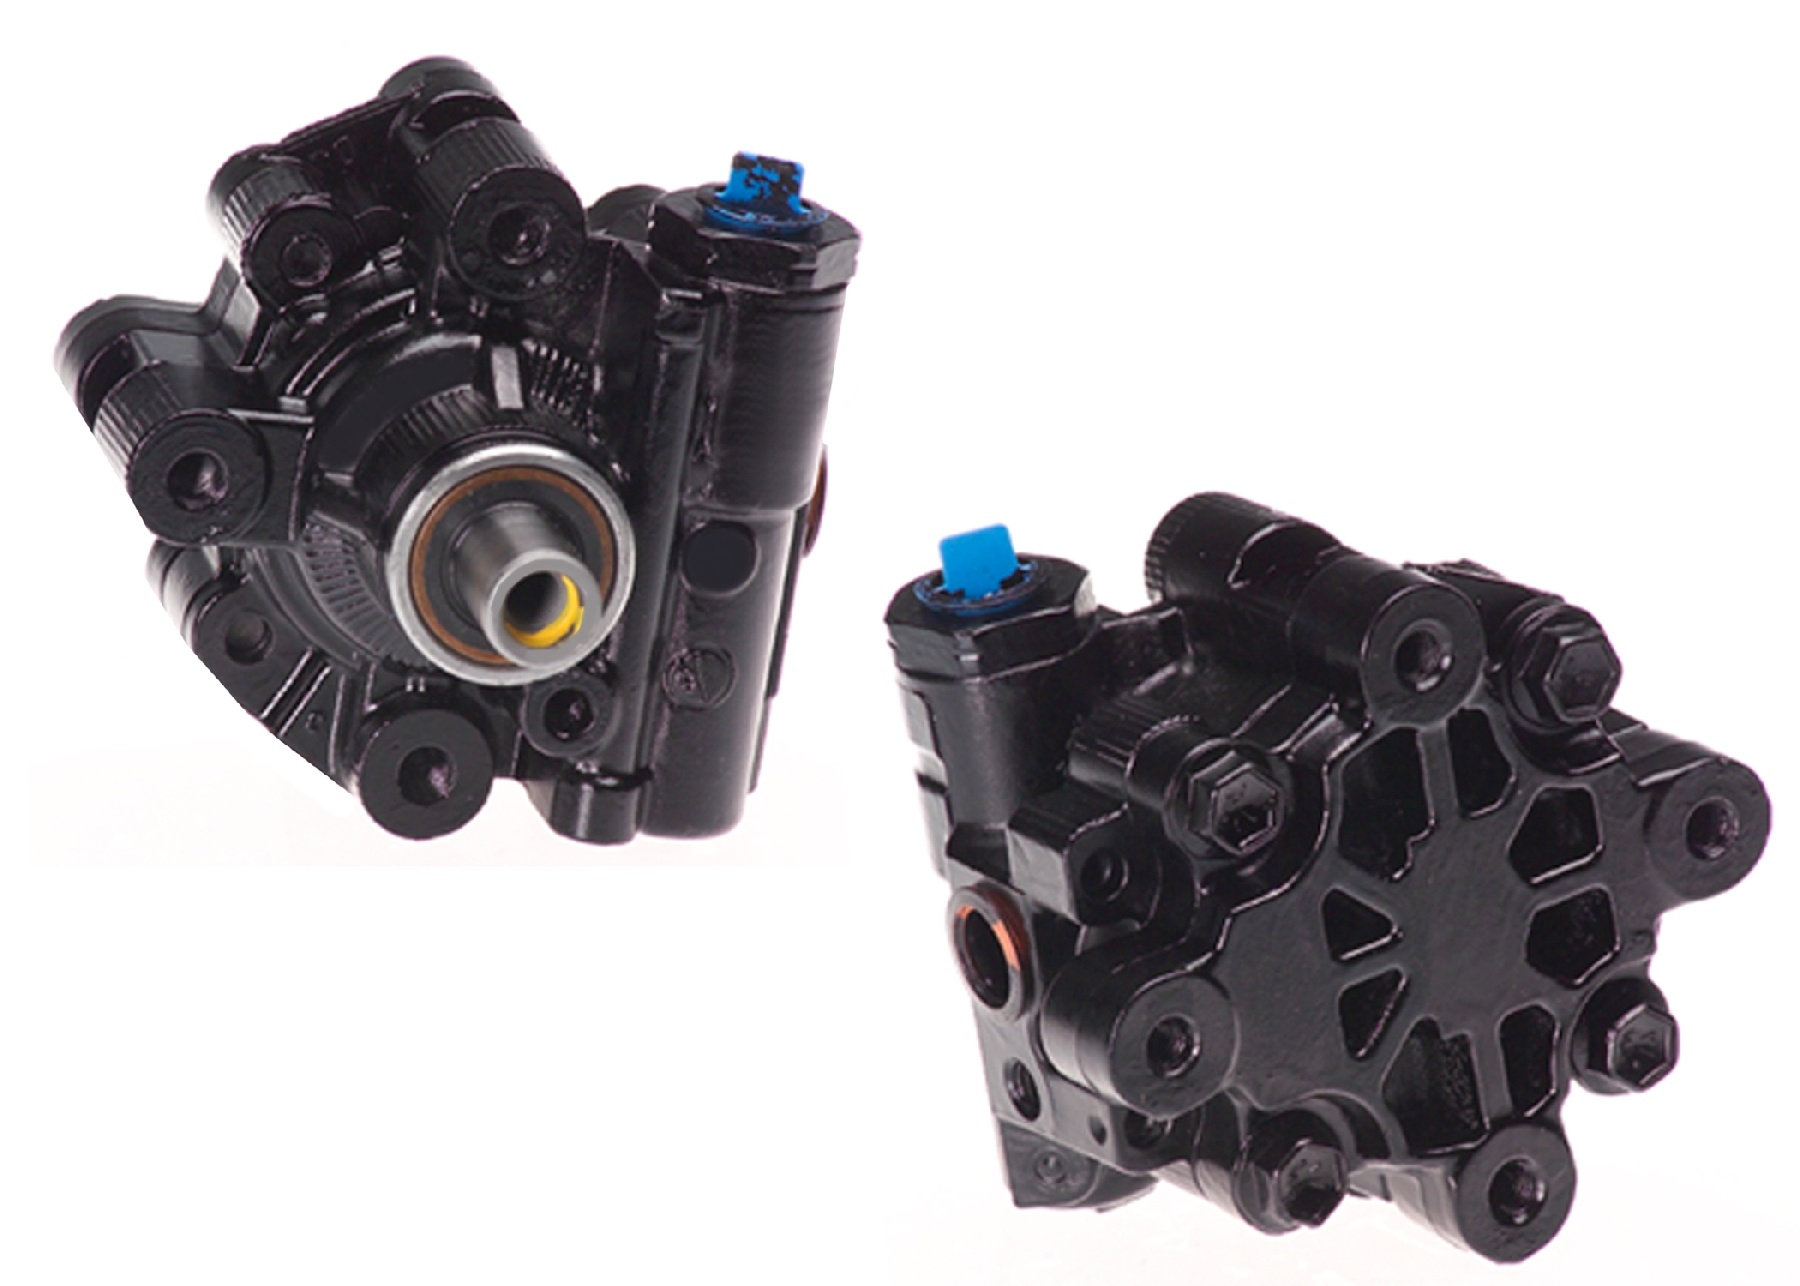 ACDELCO PROFESSIONAL STRG PRODUCTS - Reman Power Steering Pump - DC5 36-7163131